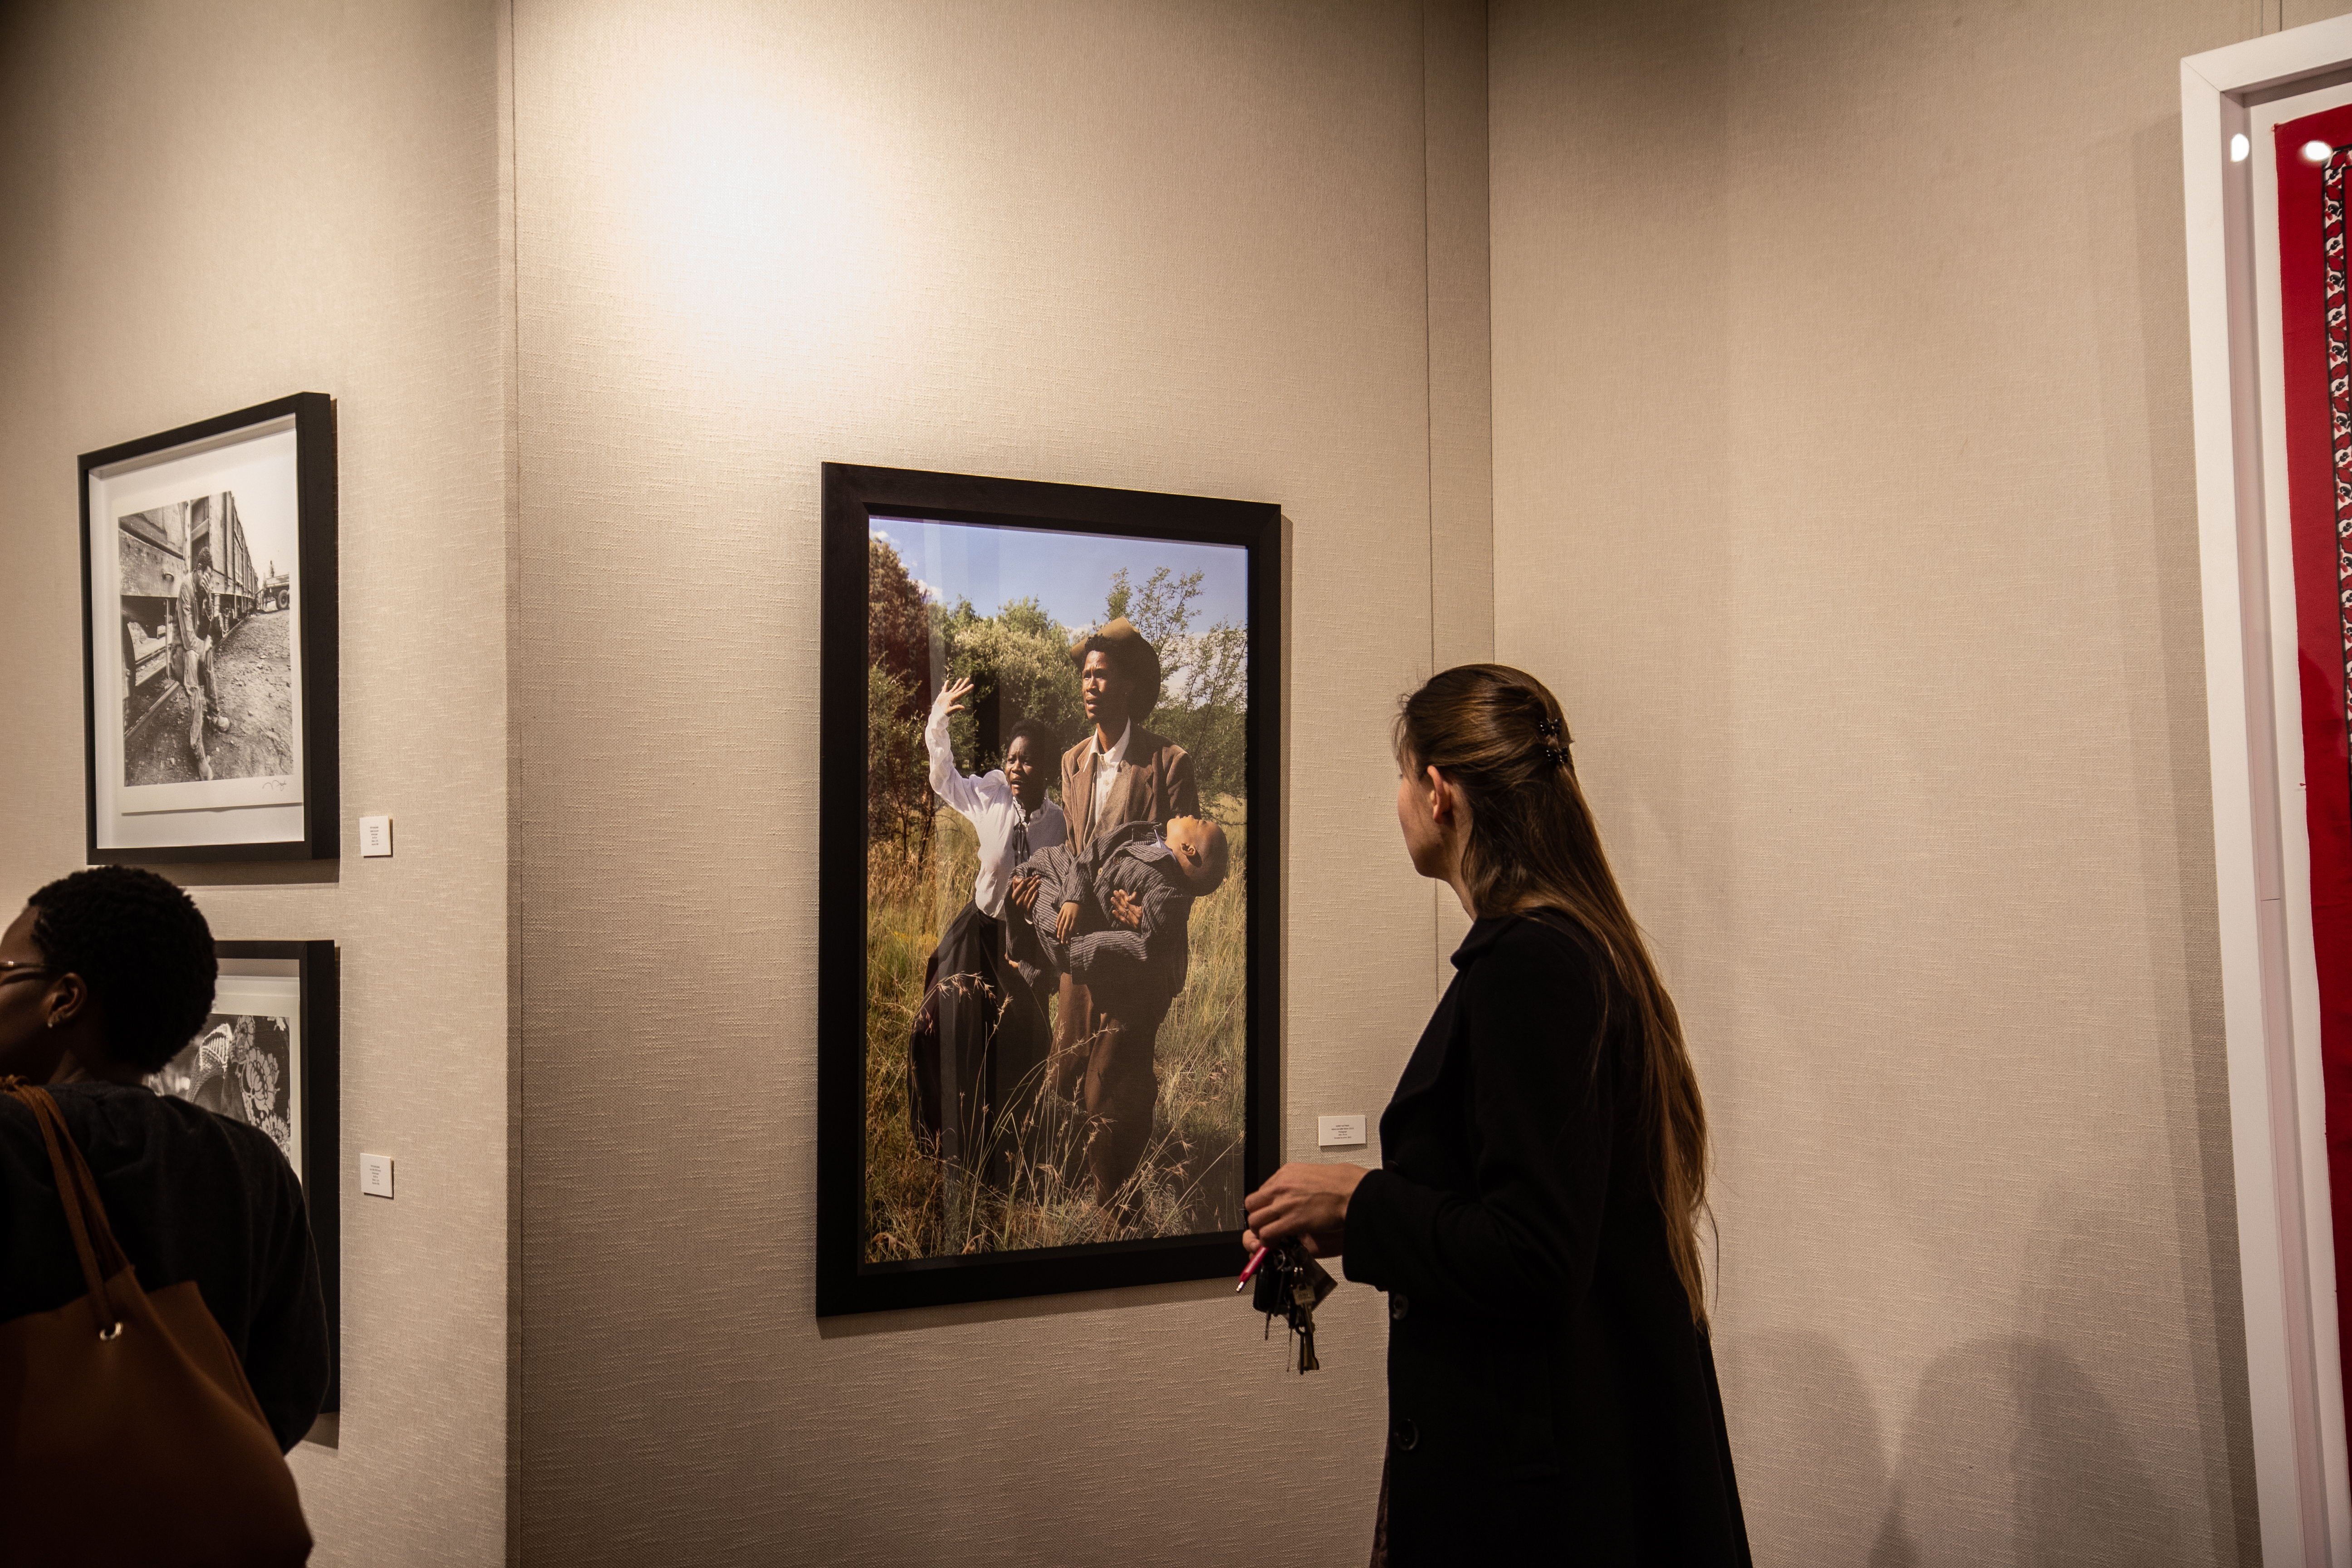 The opening exhibition on 28 August